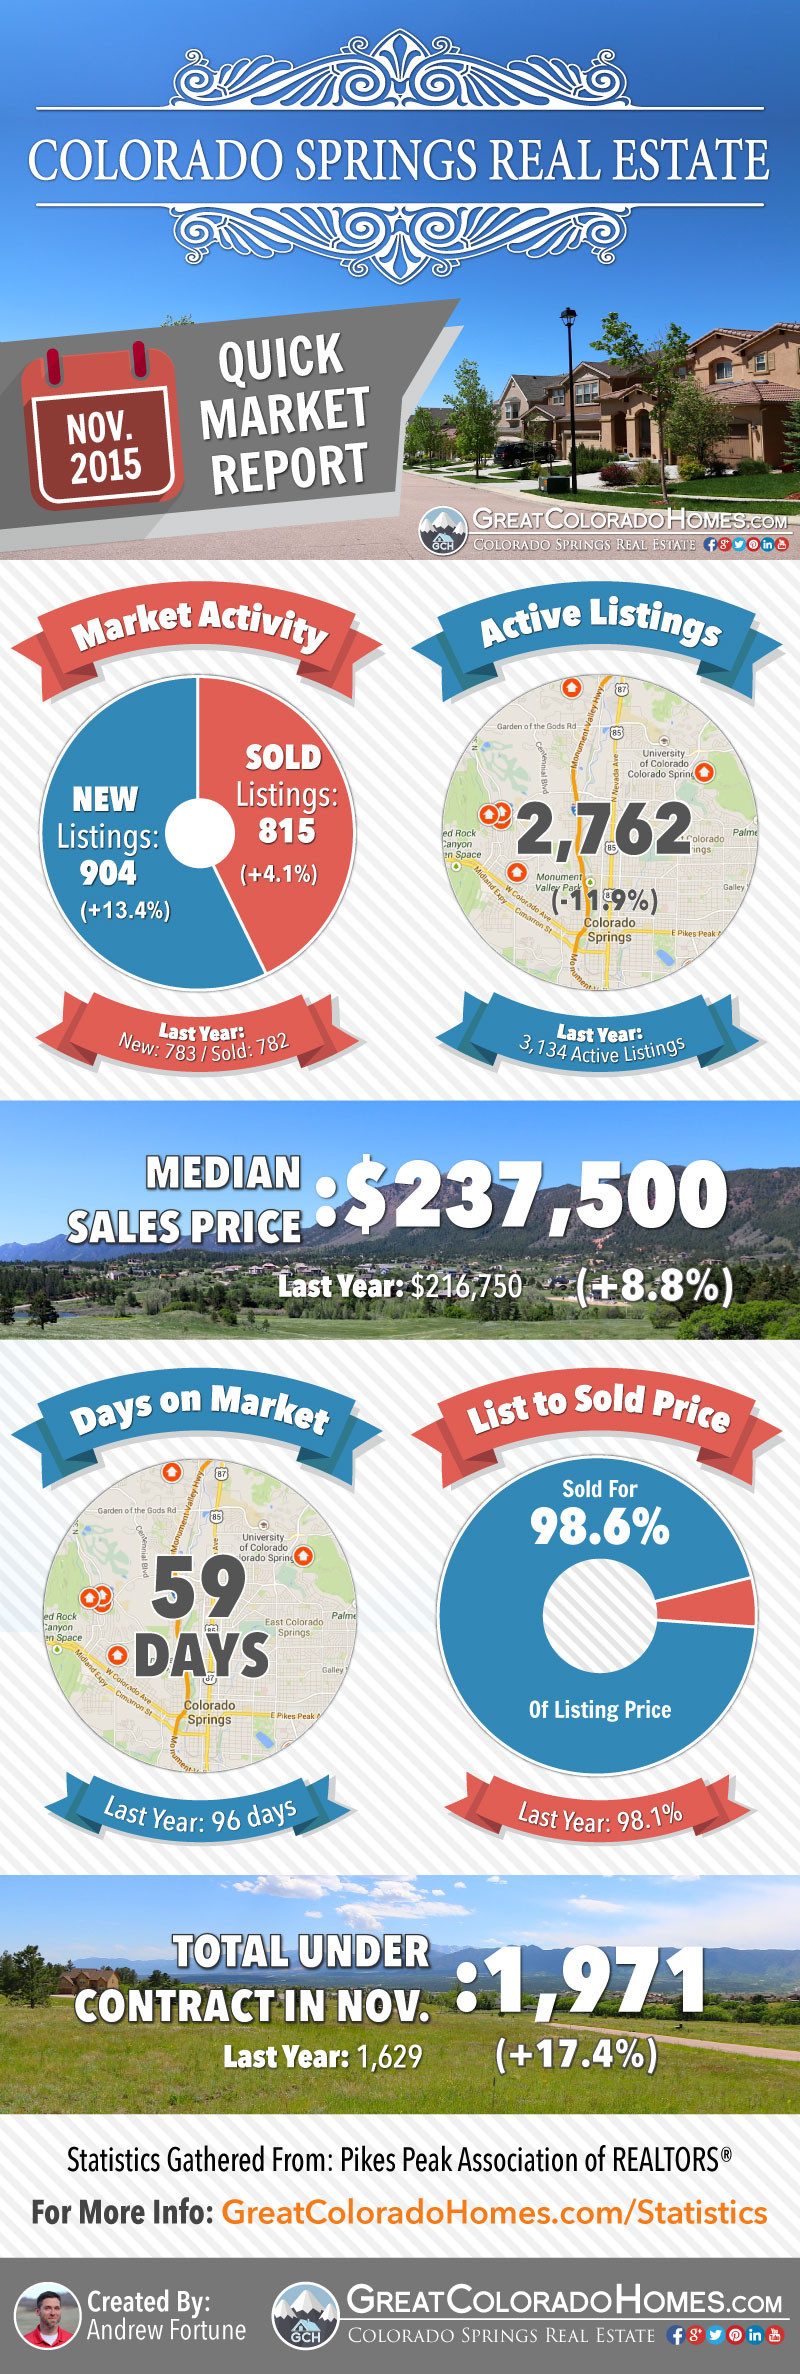 November 2015 Colorado Springs Real Estate Market Report